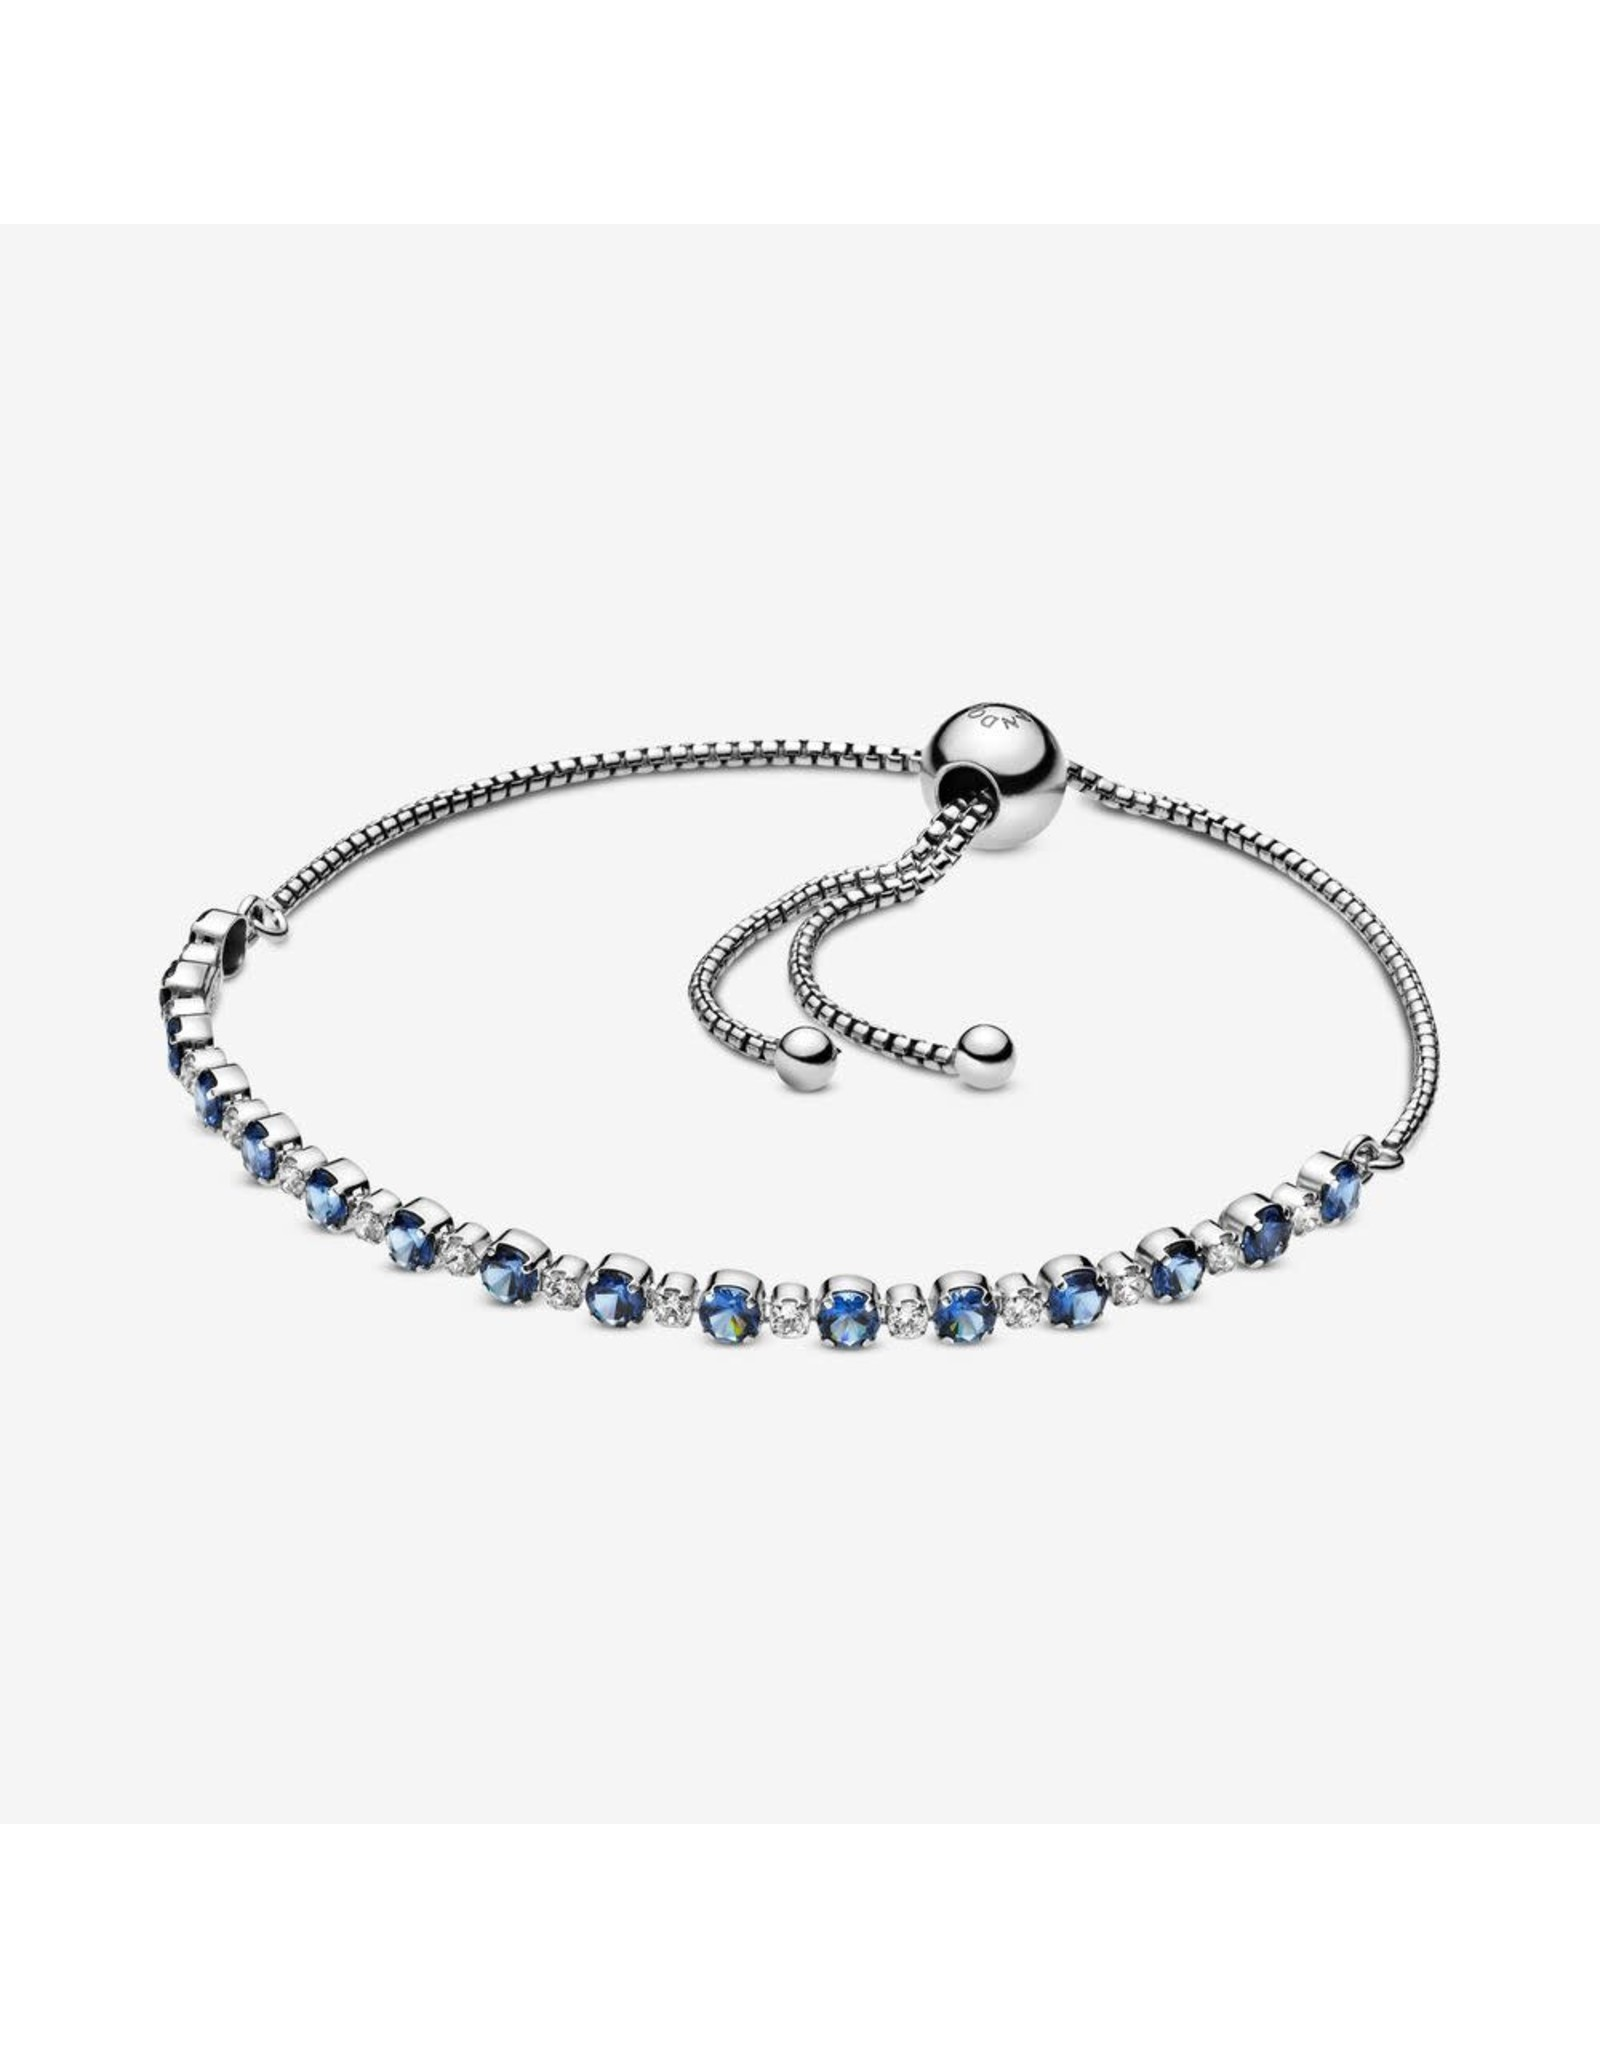 Pandora Pandora Bracelet, 598517C01,Rhodium Plated Sterling Silver With Moonlight Blue Crystal And Clear Cubic Zirconia